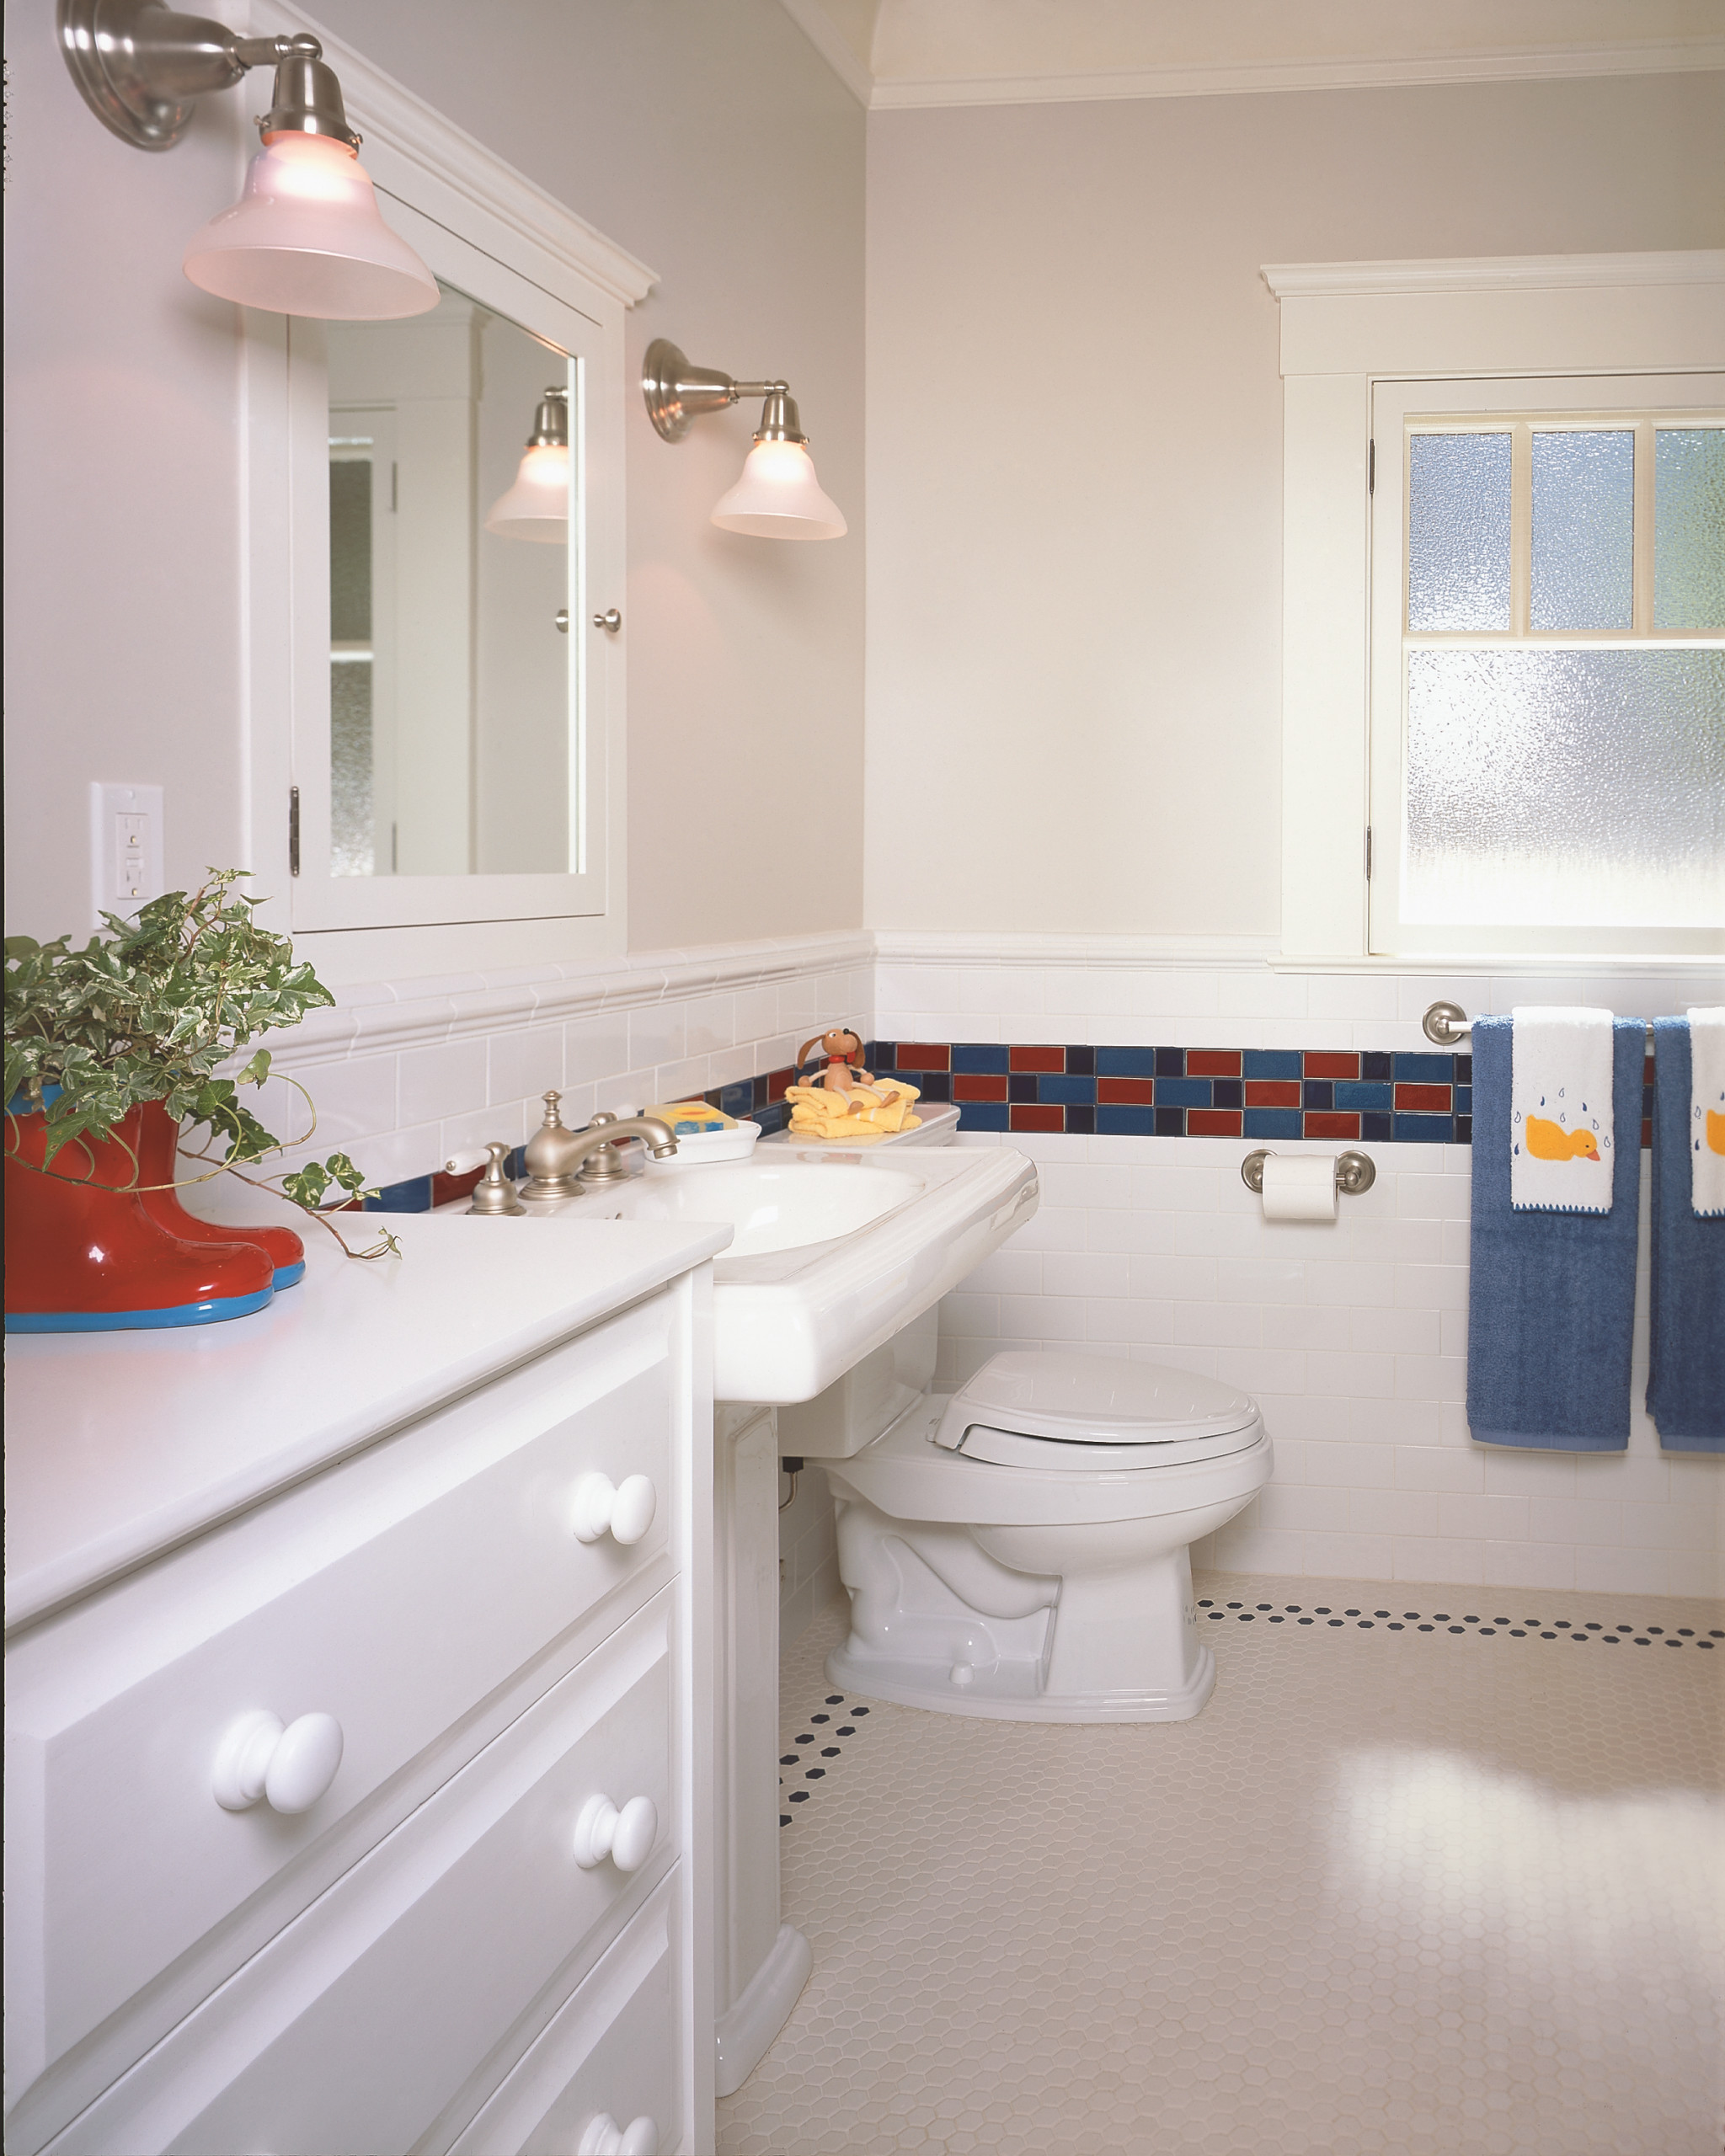 Children's bathroom with tile and built in cabinetry